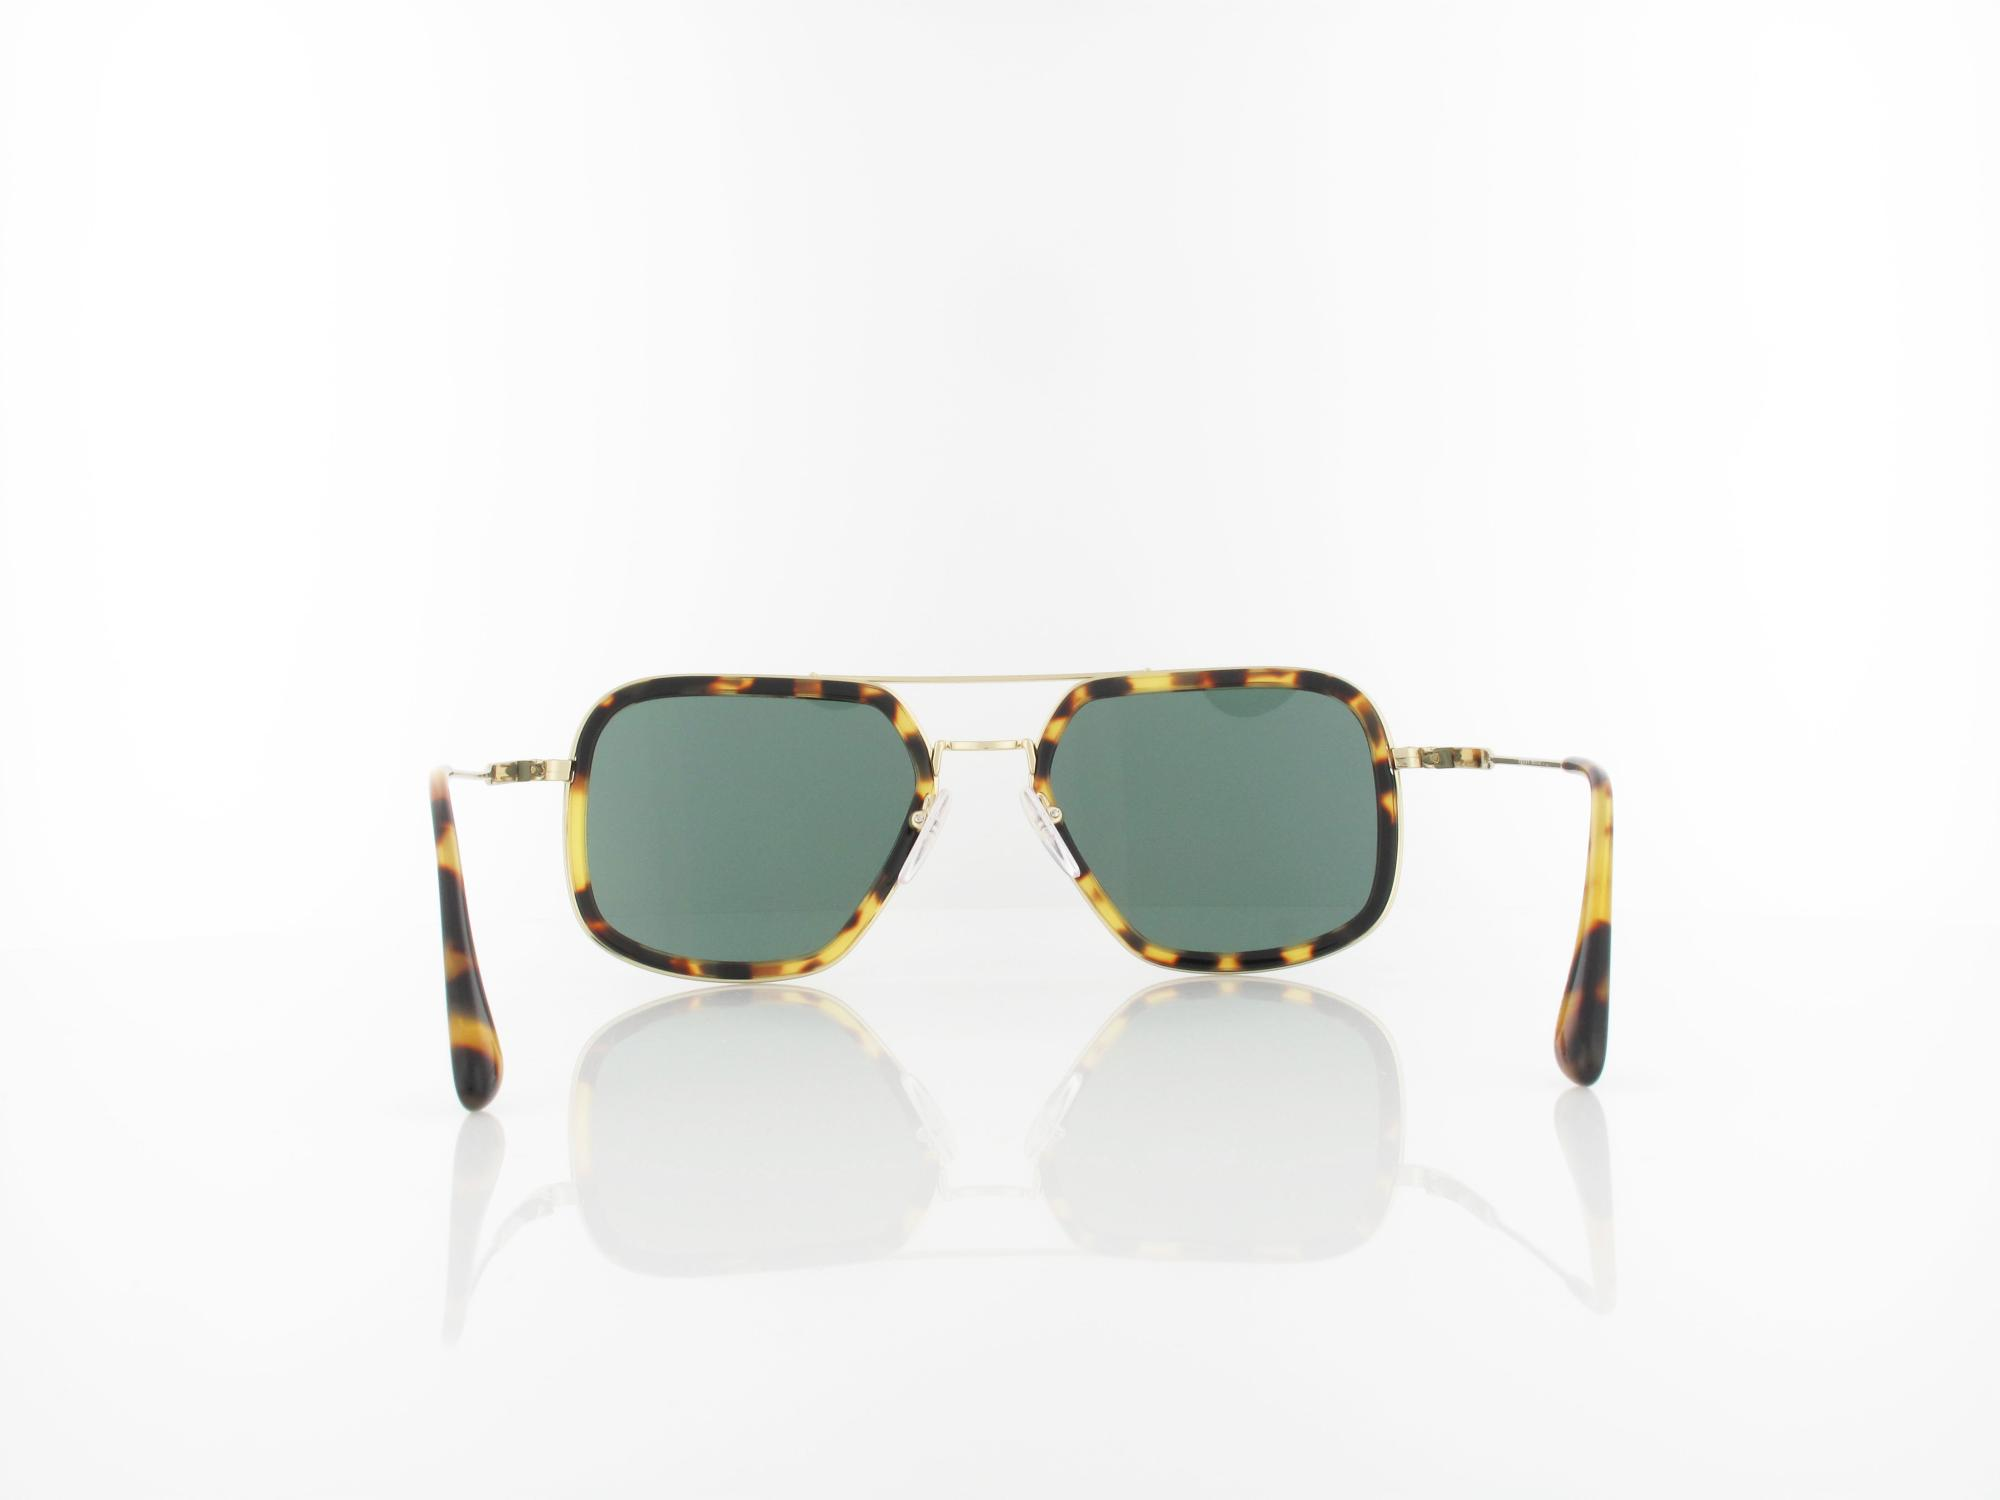 Prada | PR57XS 02A728 54 | brown pale gold / green